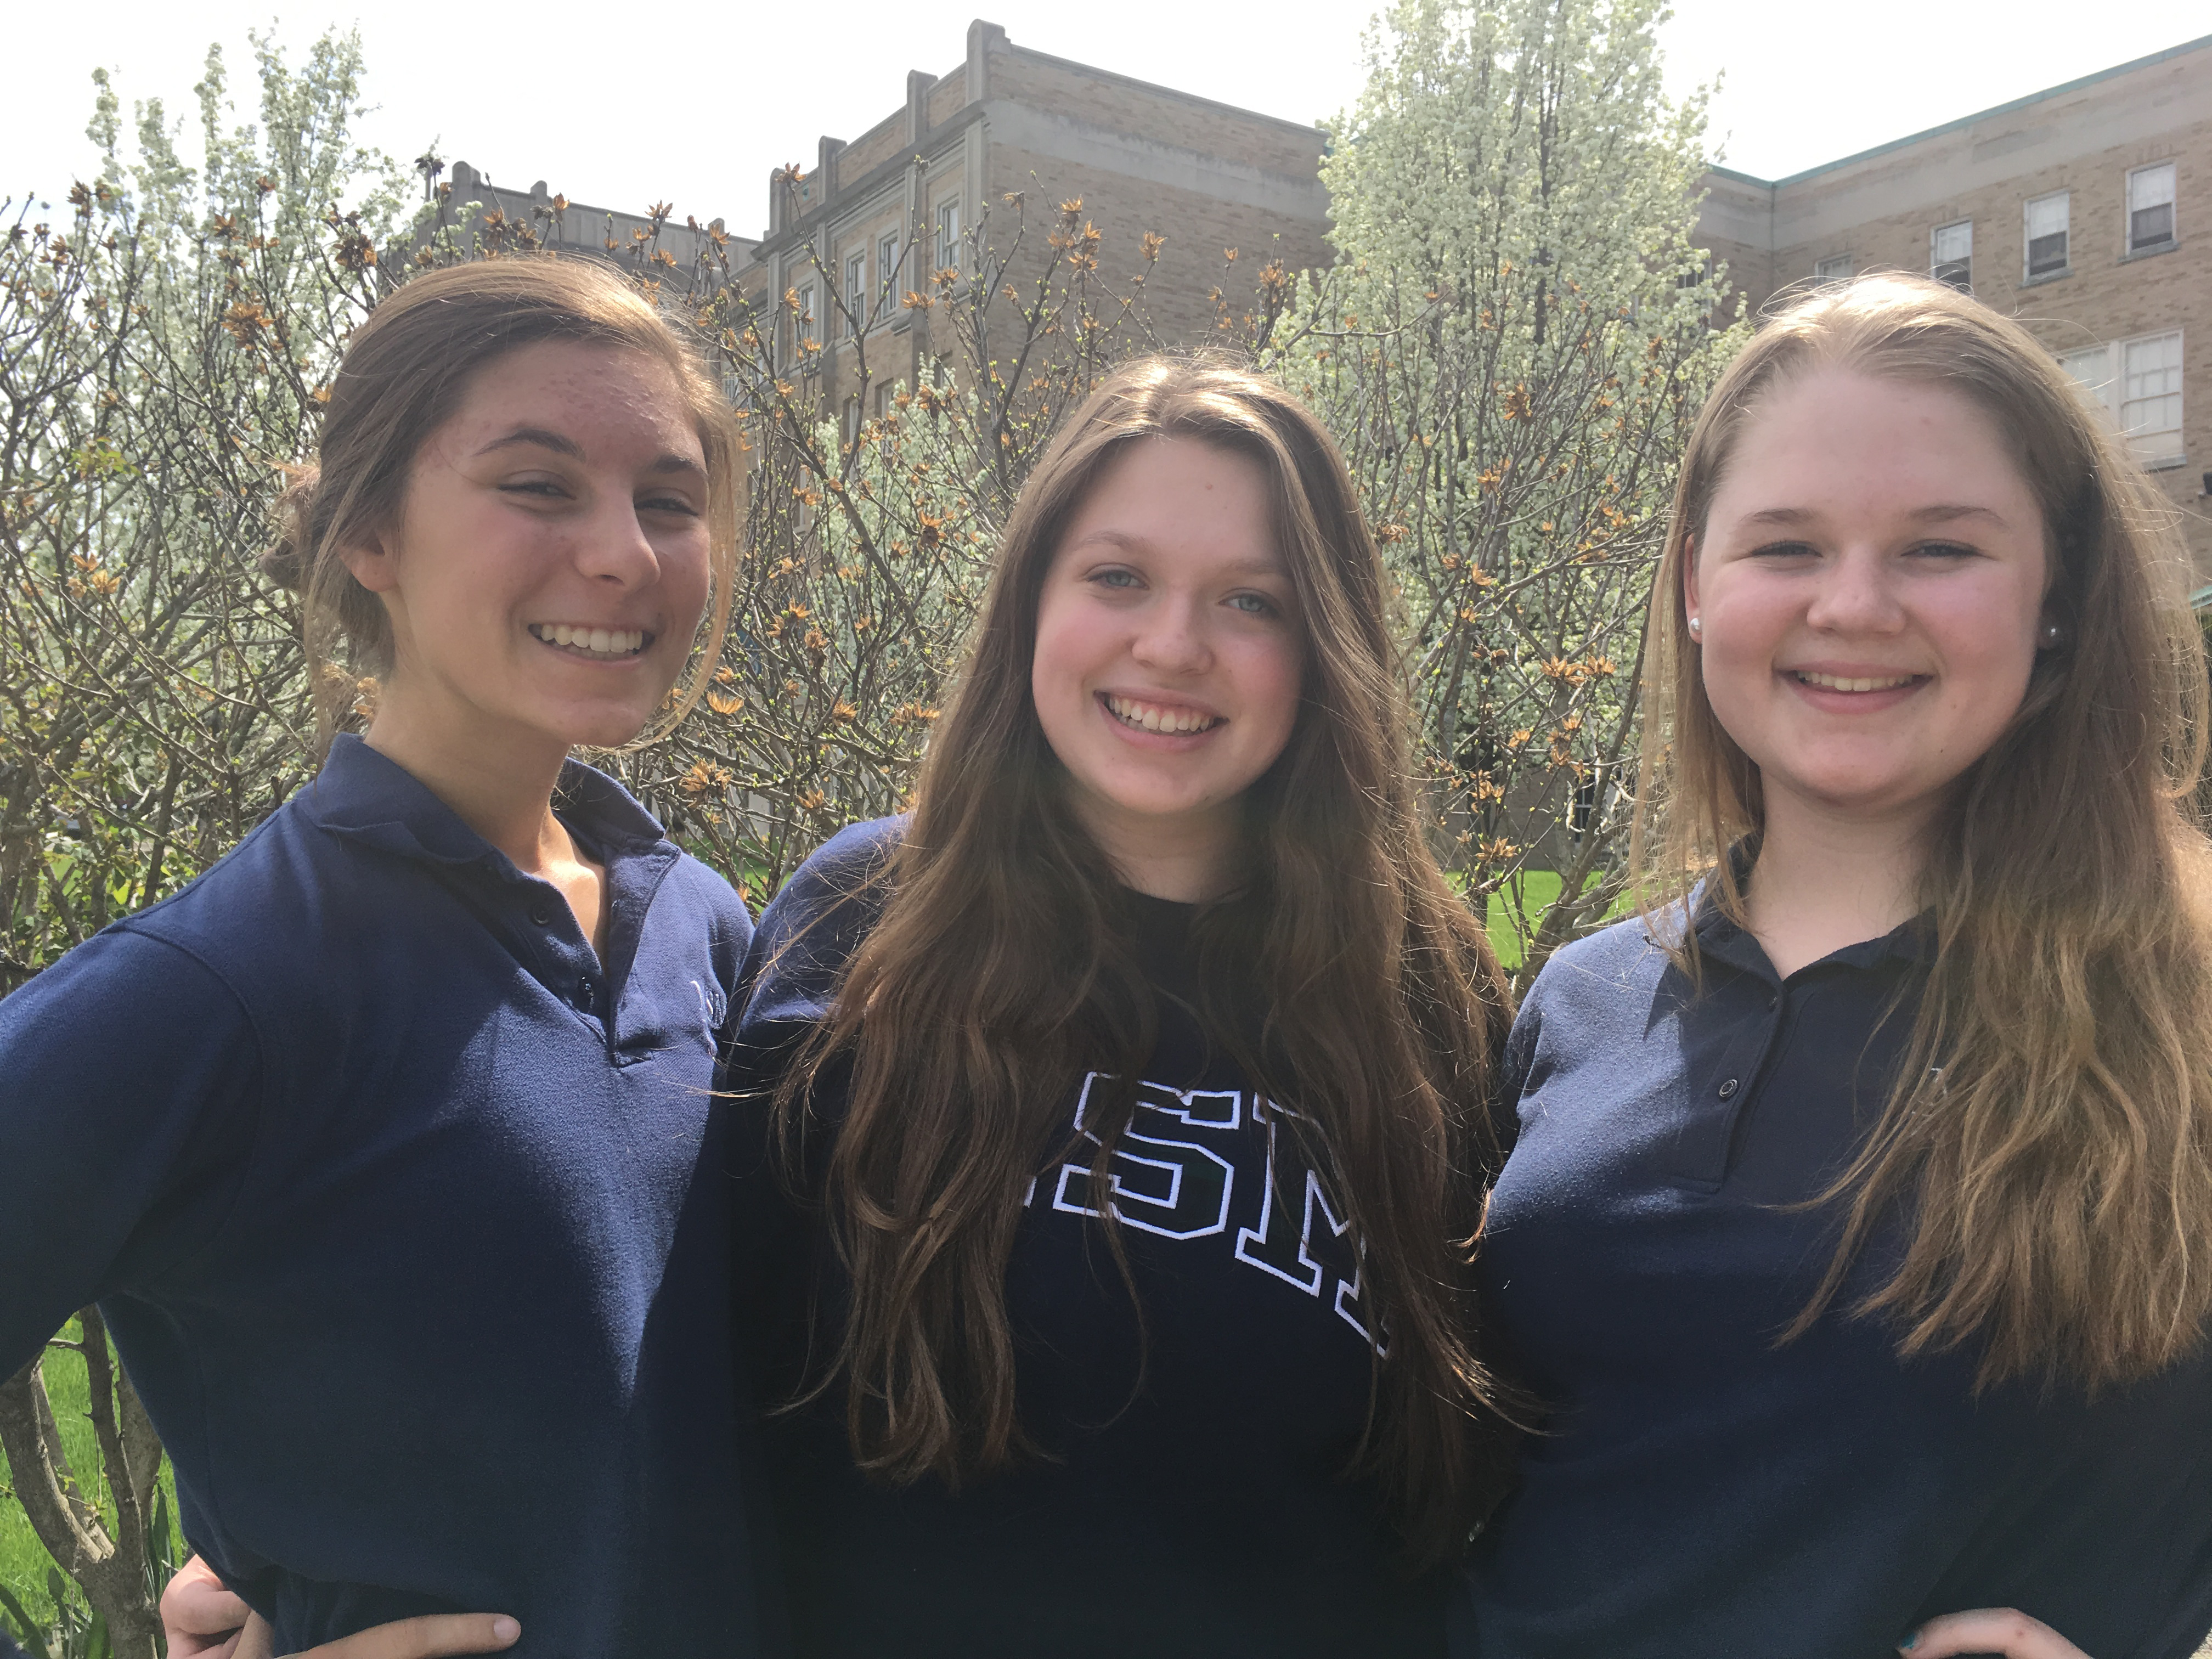 Abby Bradley, Kaitlin Brill and Emily Bingham, sophomores at Mount St. Mary Academy, have started a marketing company called Business Buzz.